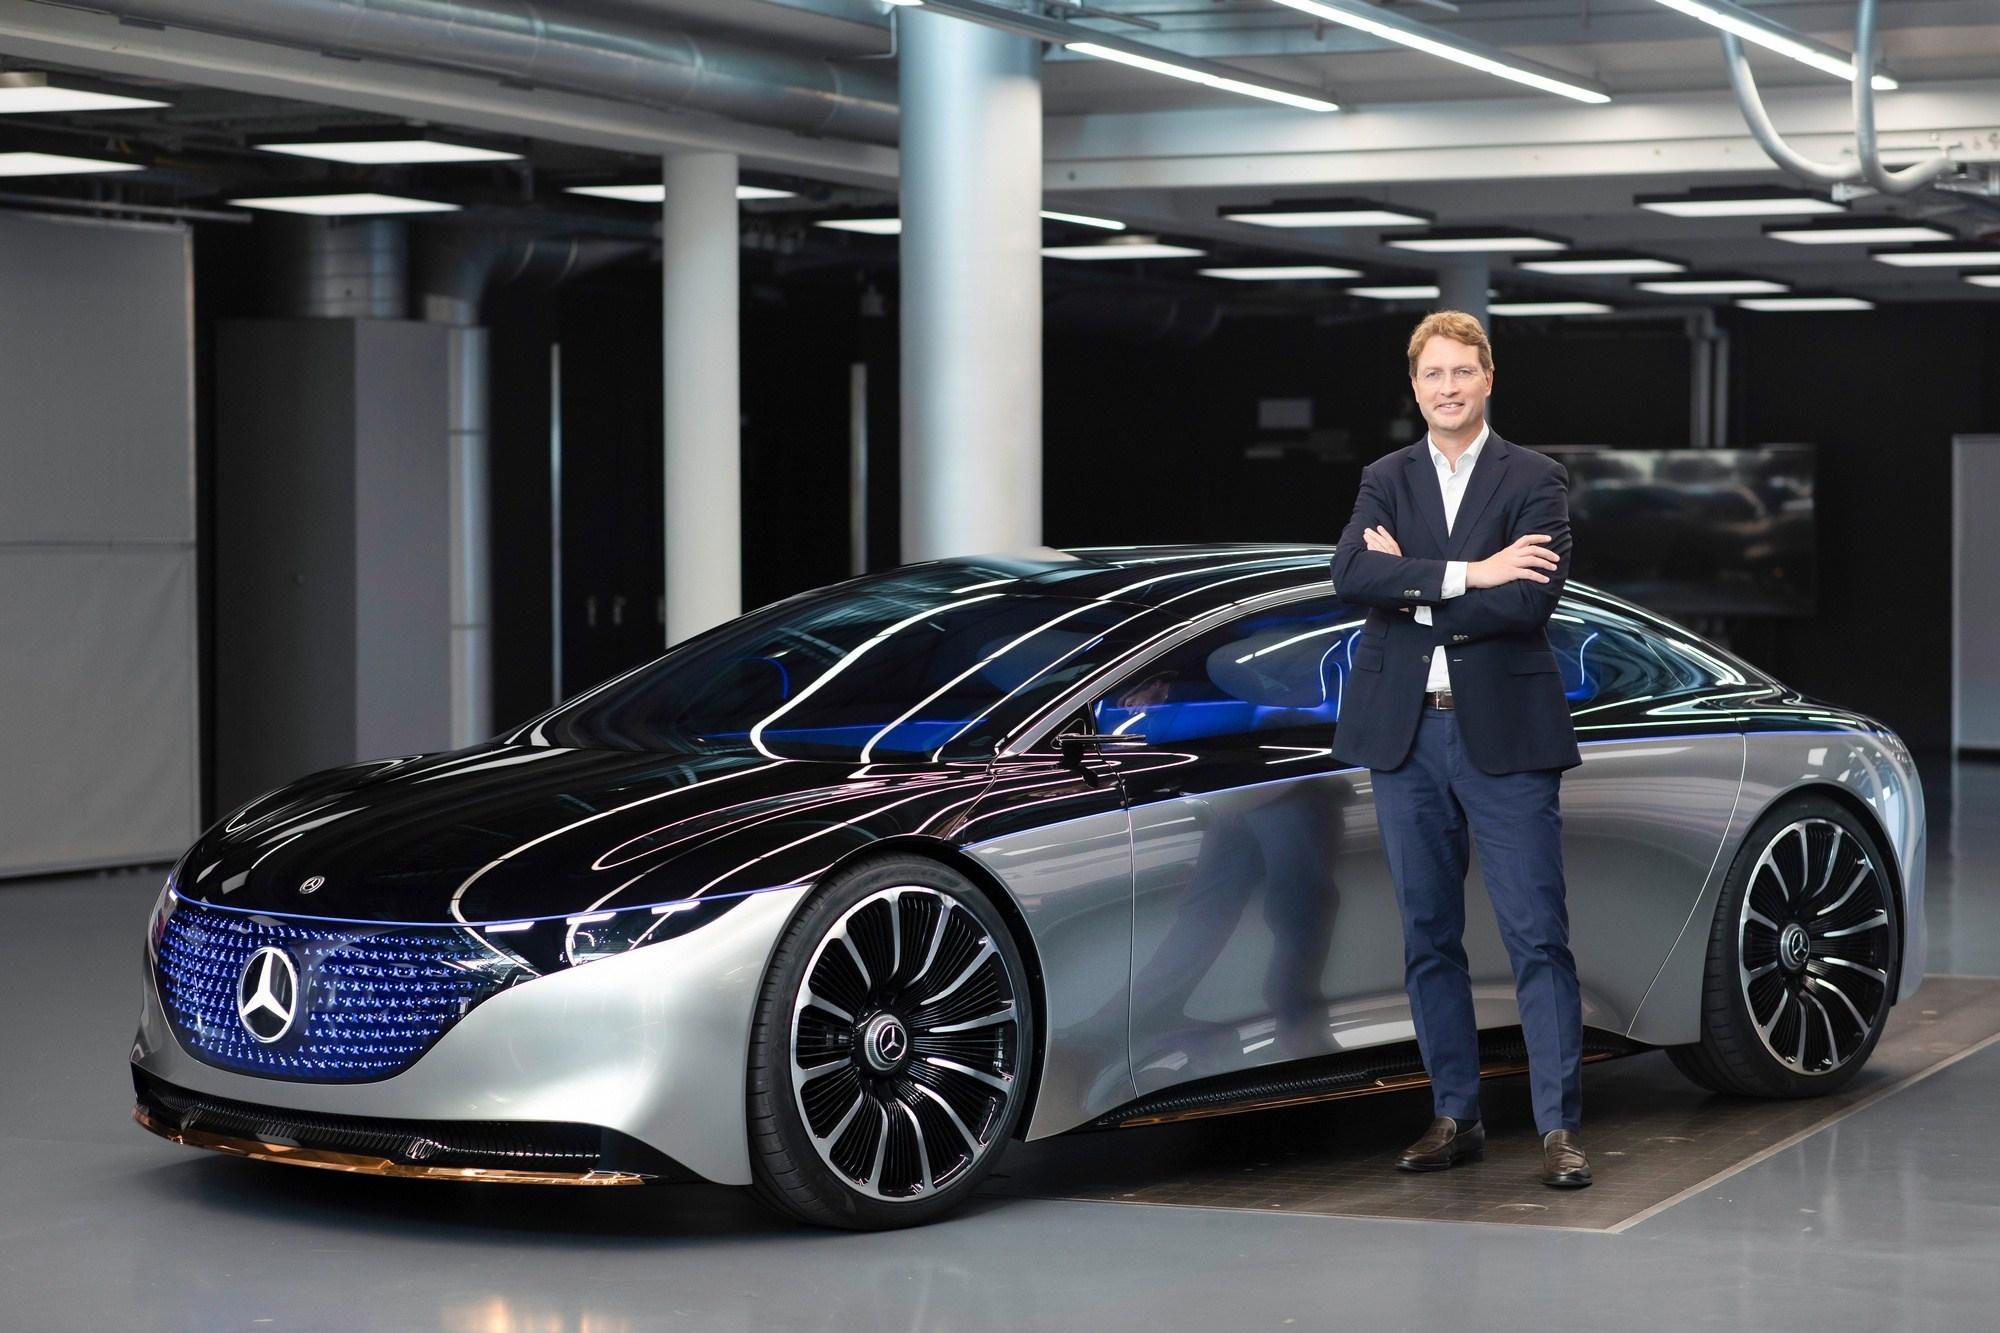 Mercedes-Benz is preparing to sell the new electric vehicle EQS